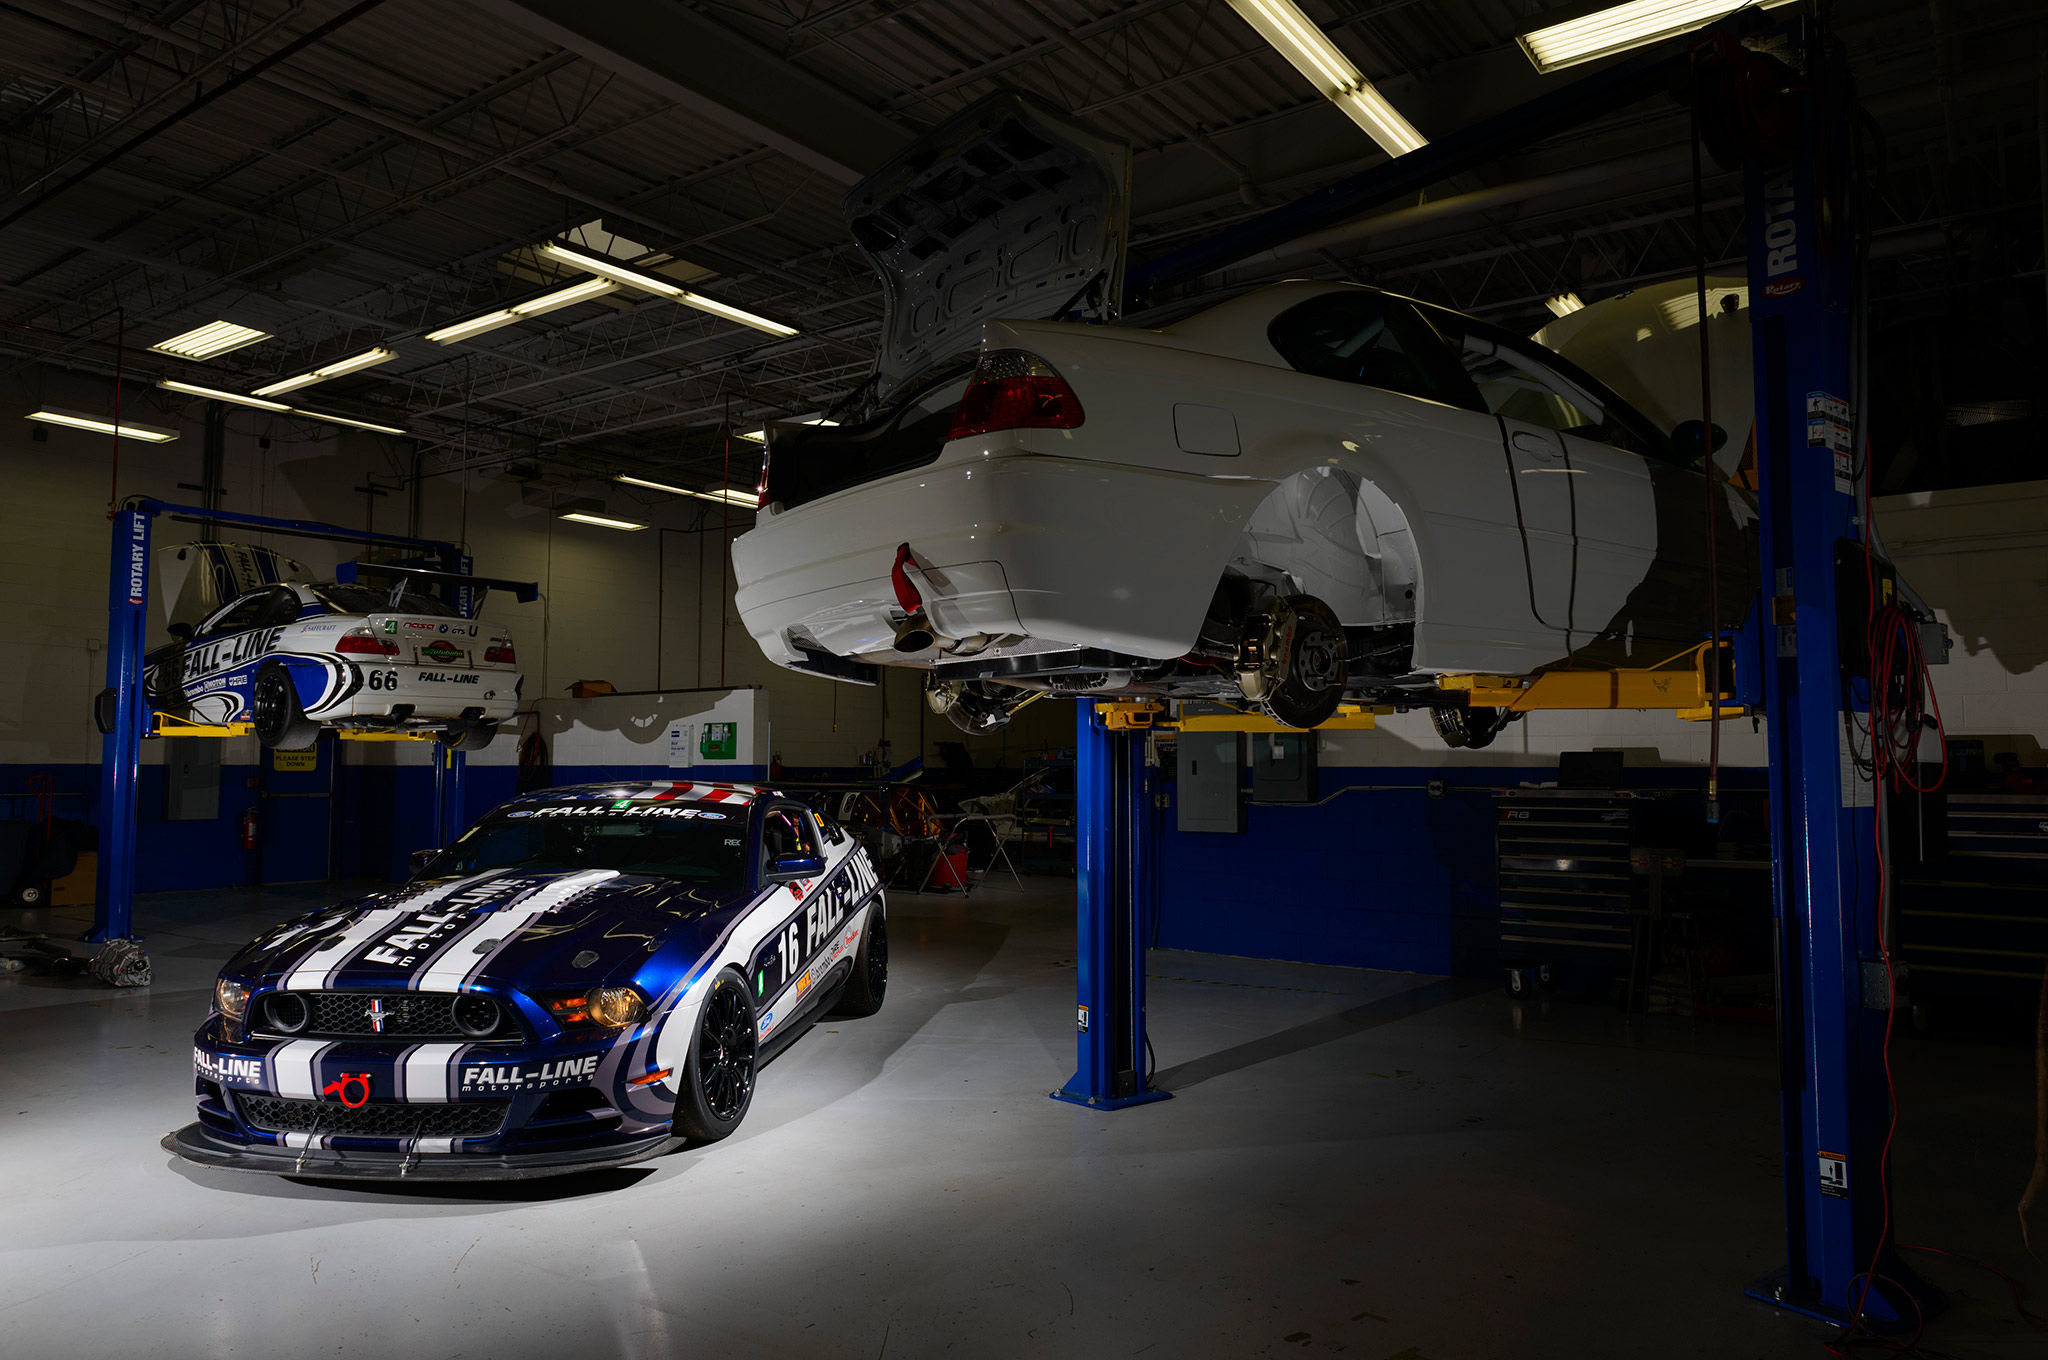 Fall-Line Motorsports is synonymous with building championship-winning German race cars, so when Thomas Herb commissioned Fall-Line to apply its build philosophy to a Mustang, the result was bound to be impressive.